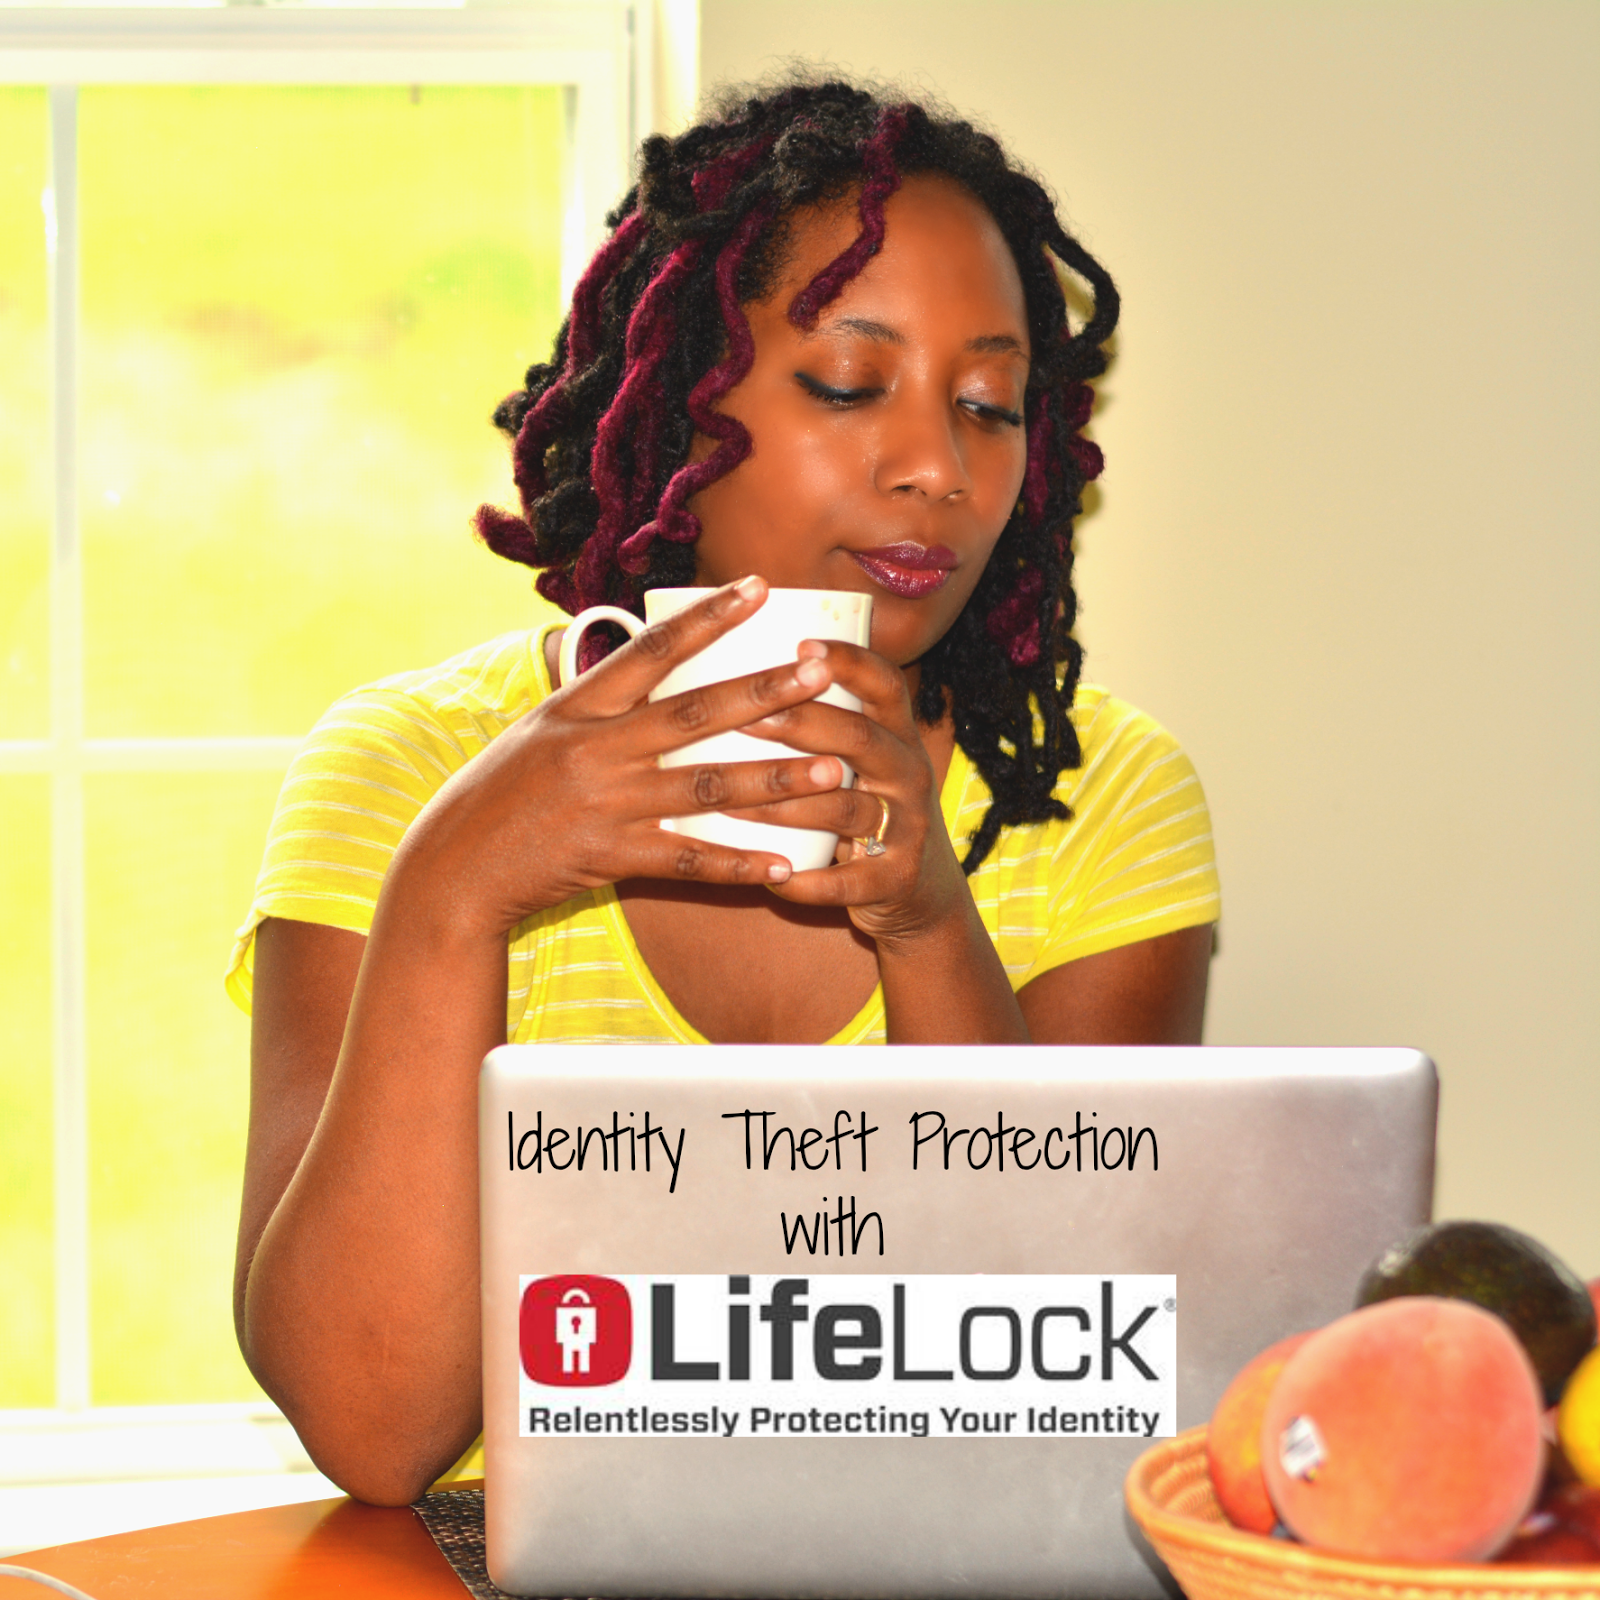 Identity Theft Protection with LifeLock Thriftanista in